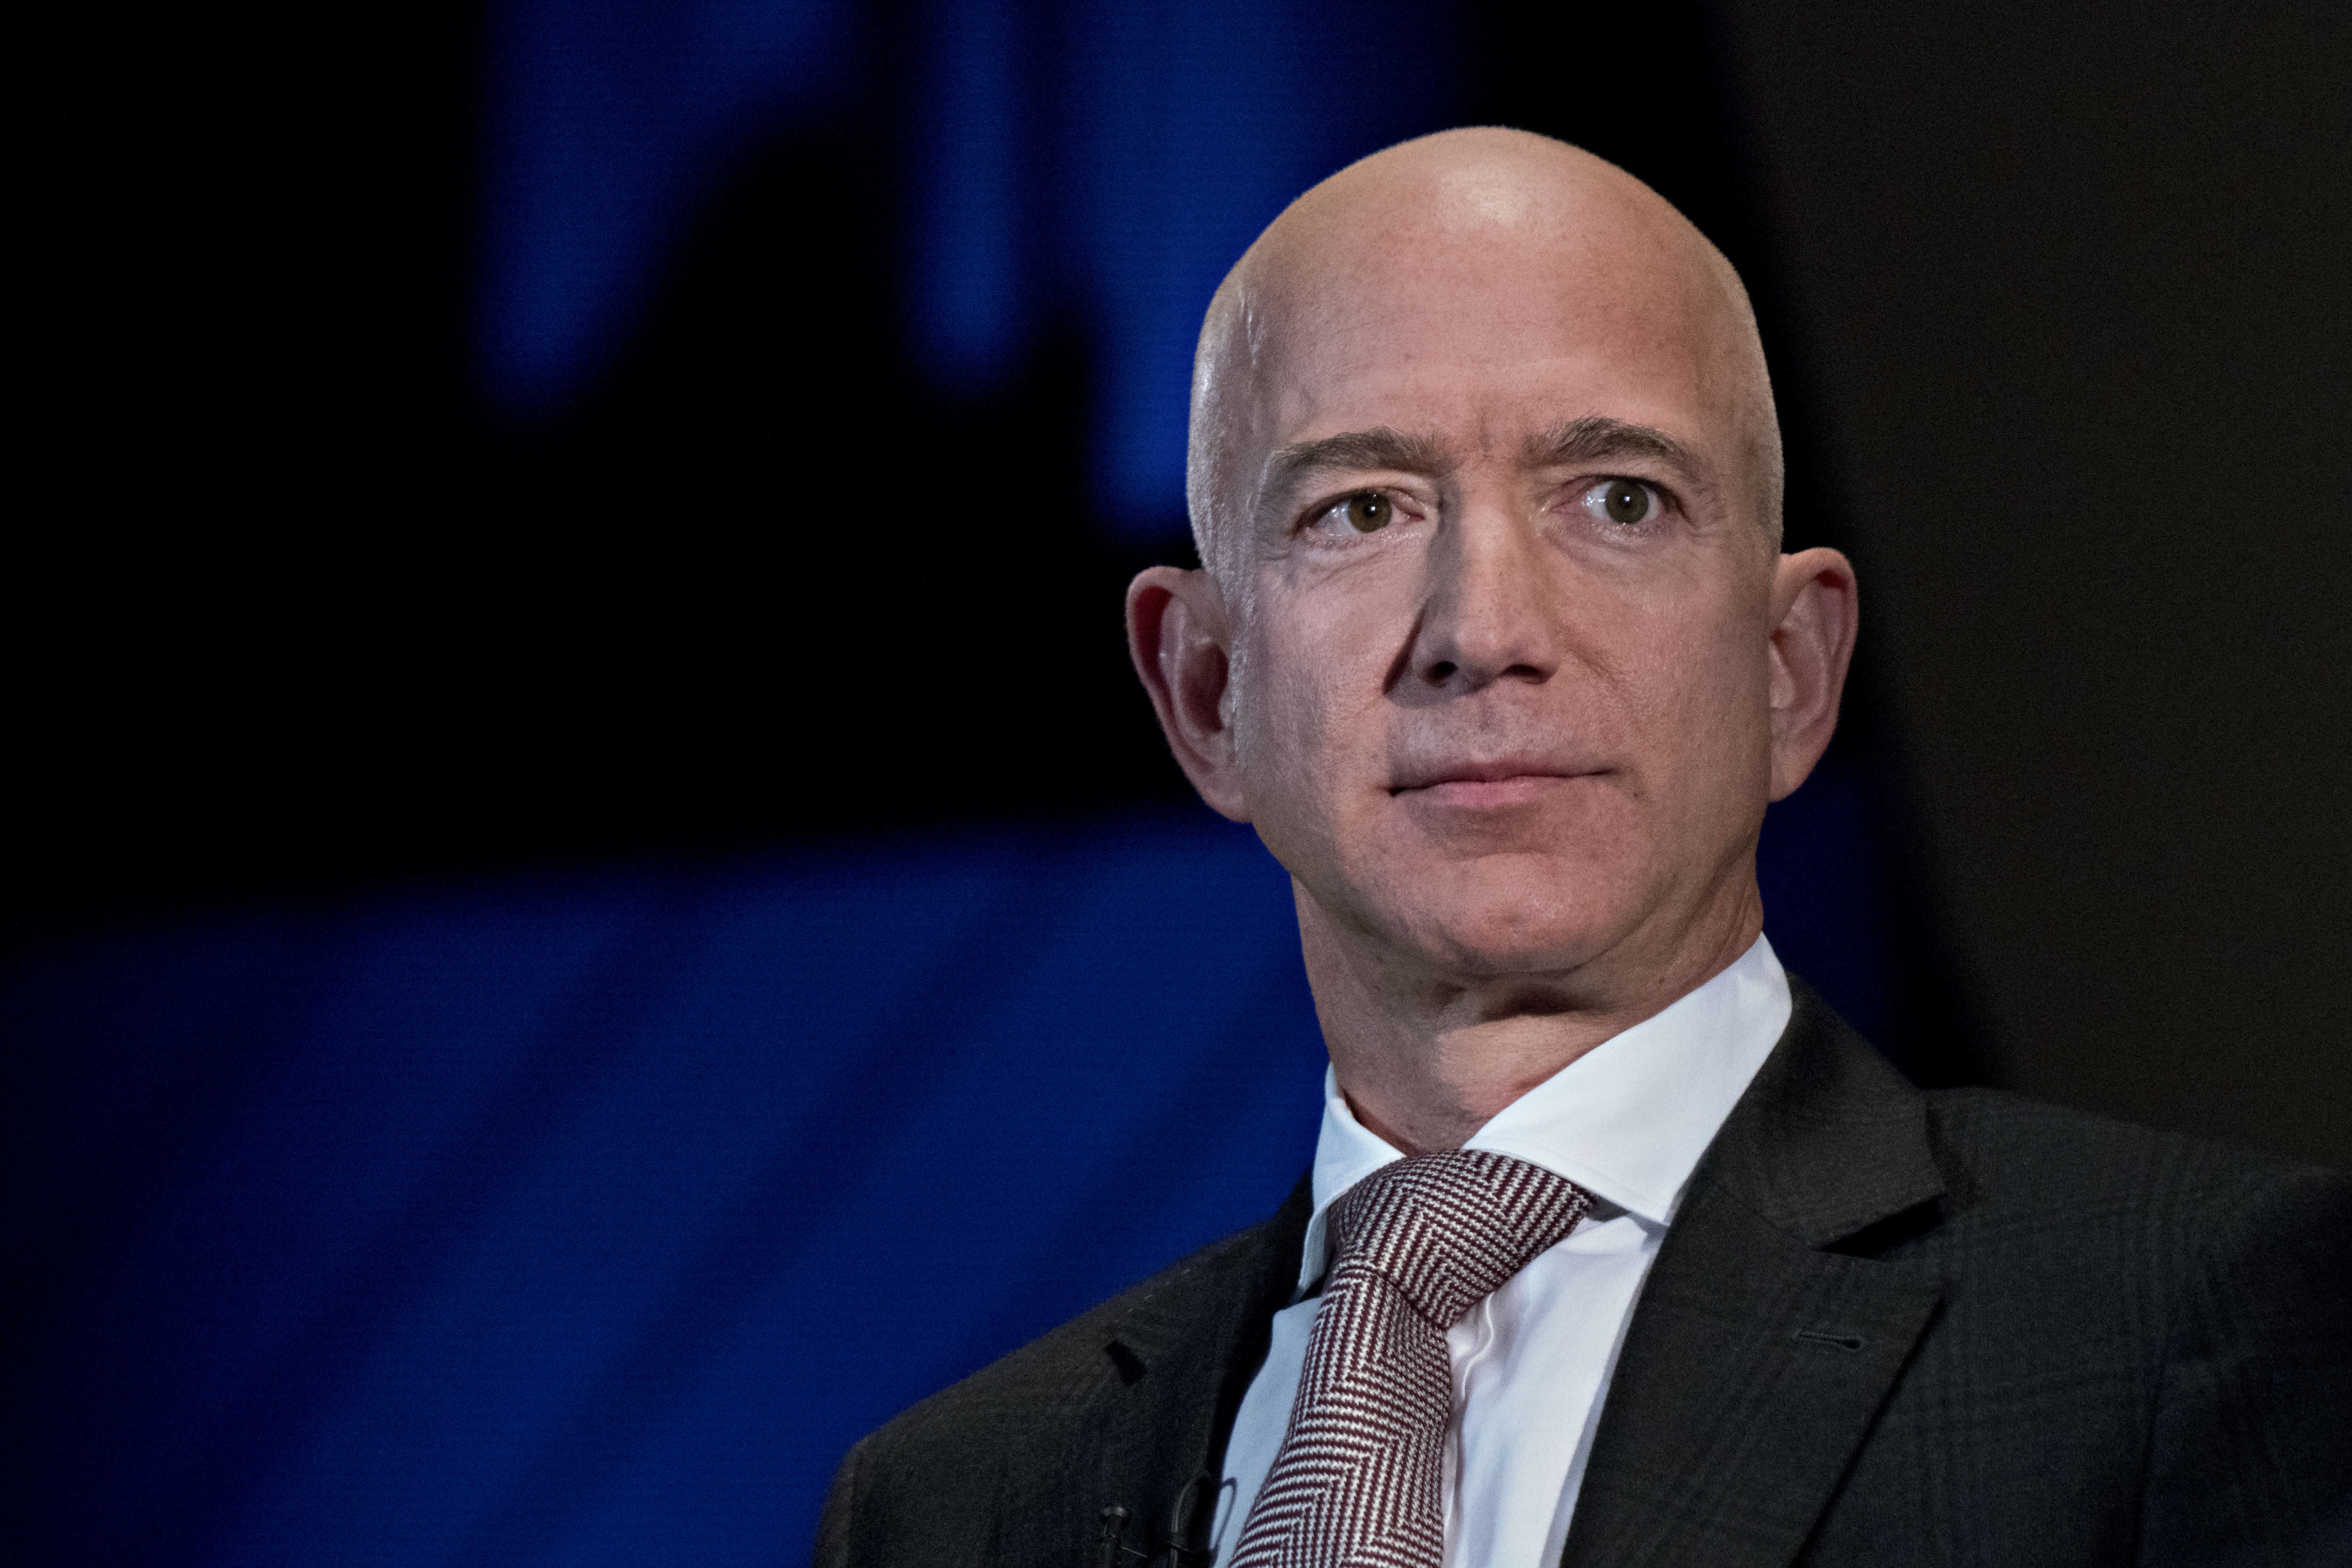 Security consultants that Jeff Bezos hired think his phone might have been hacked by Saudi crown prince, report says